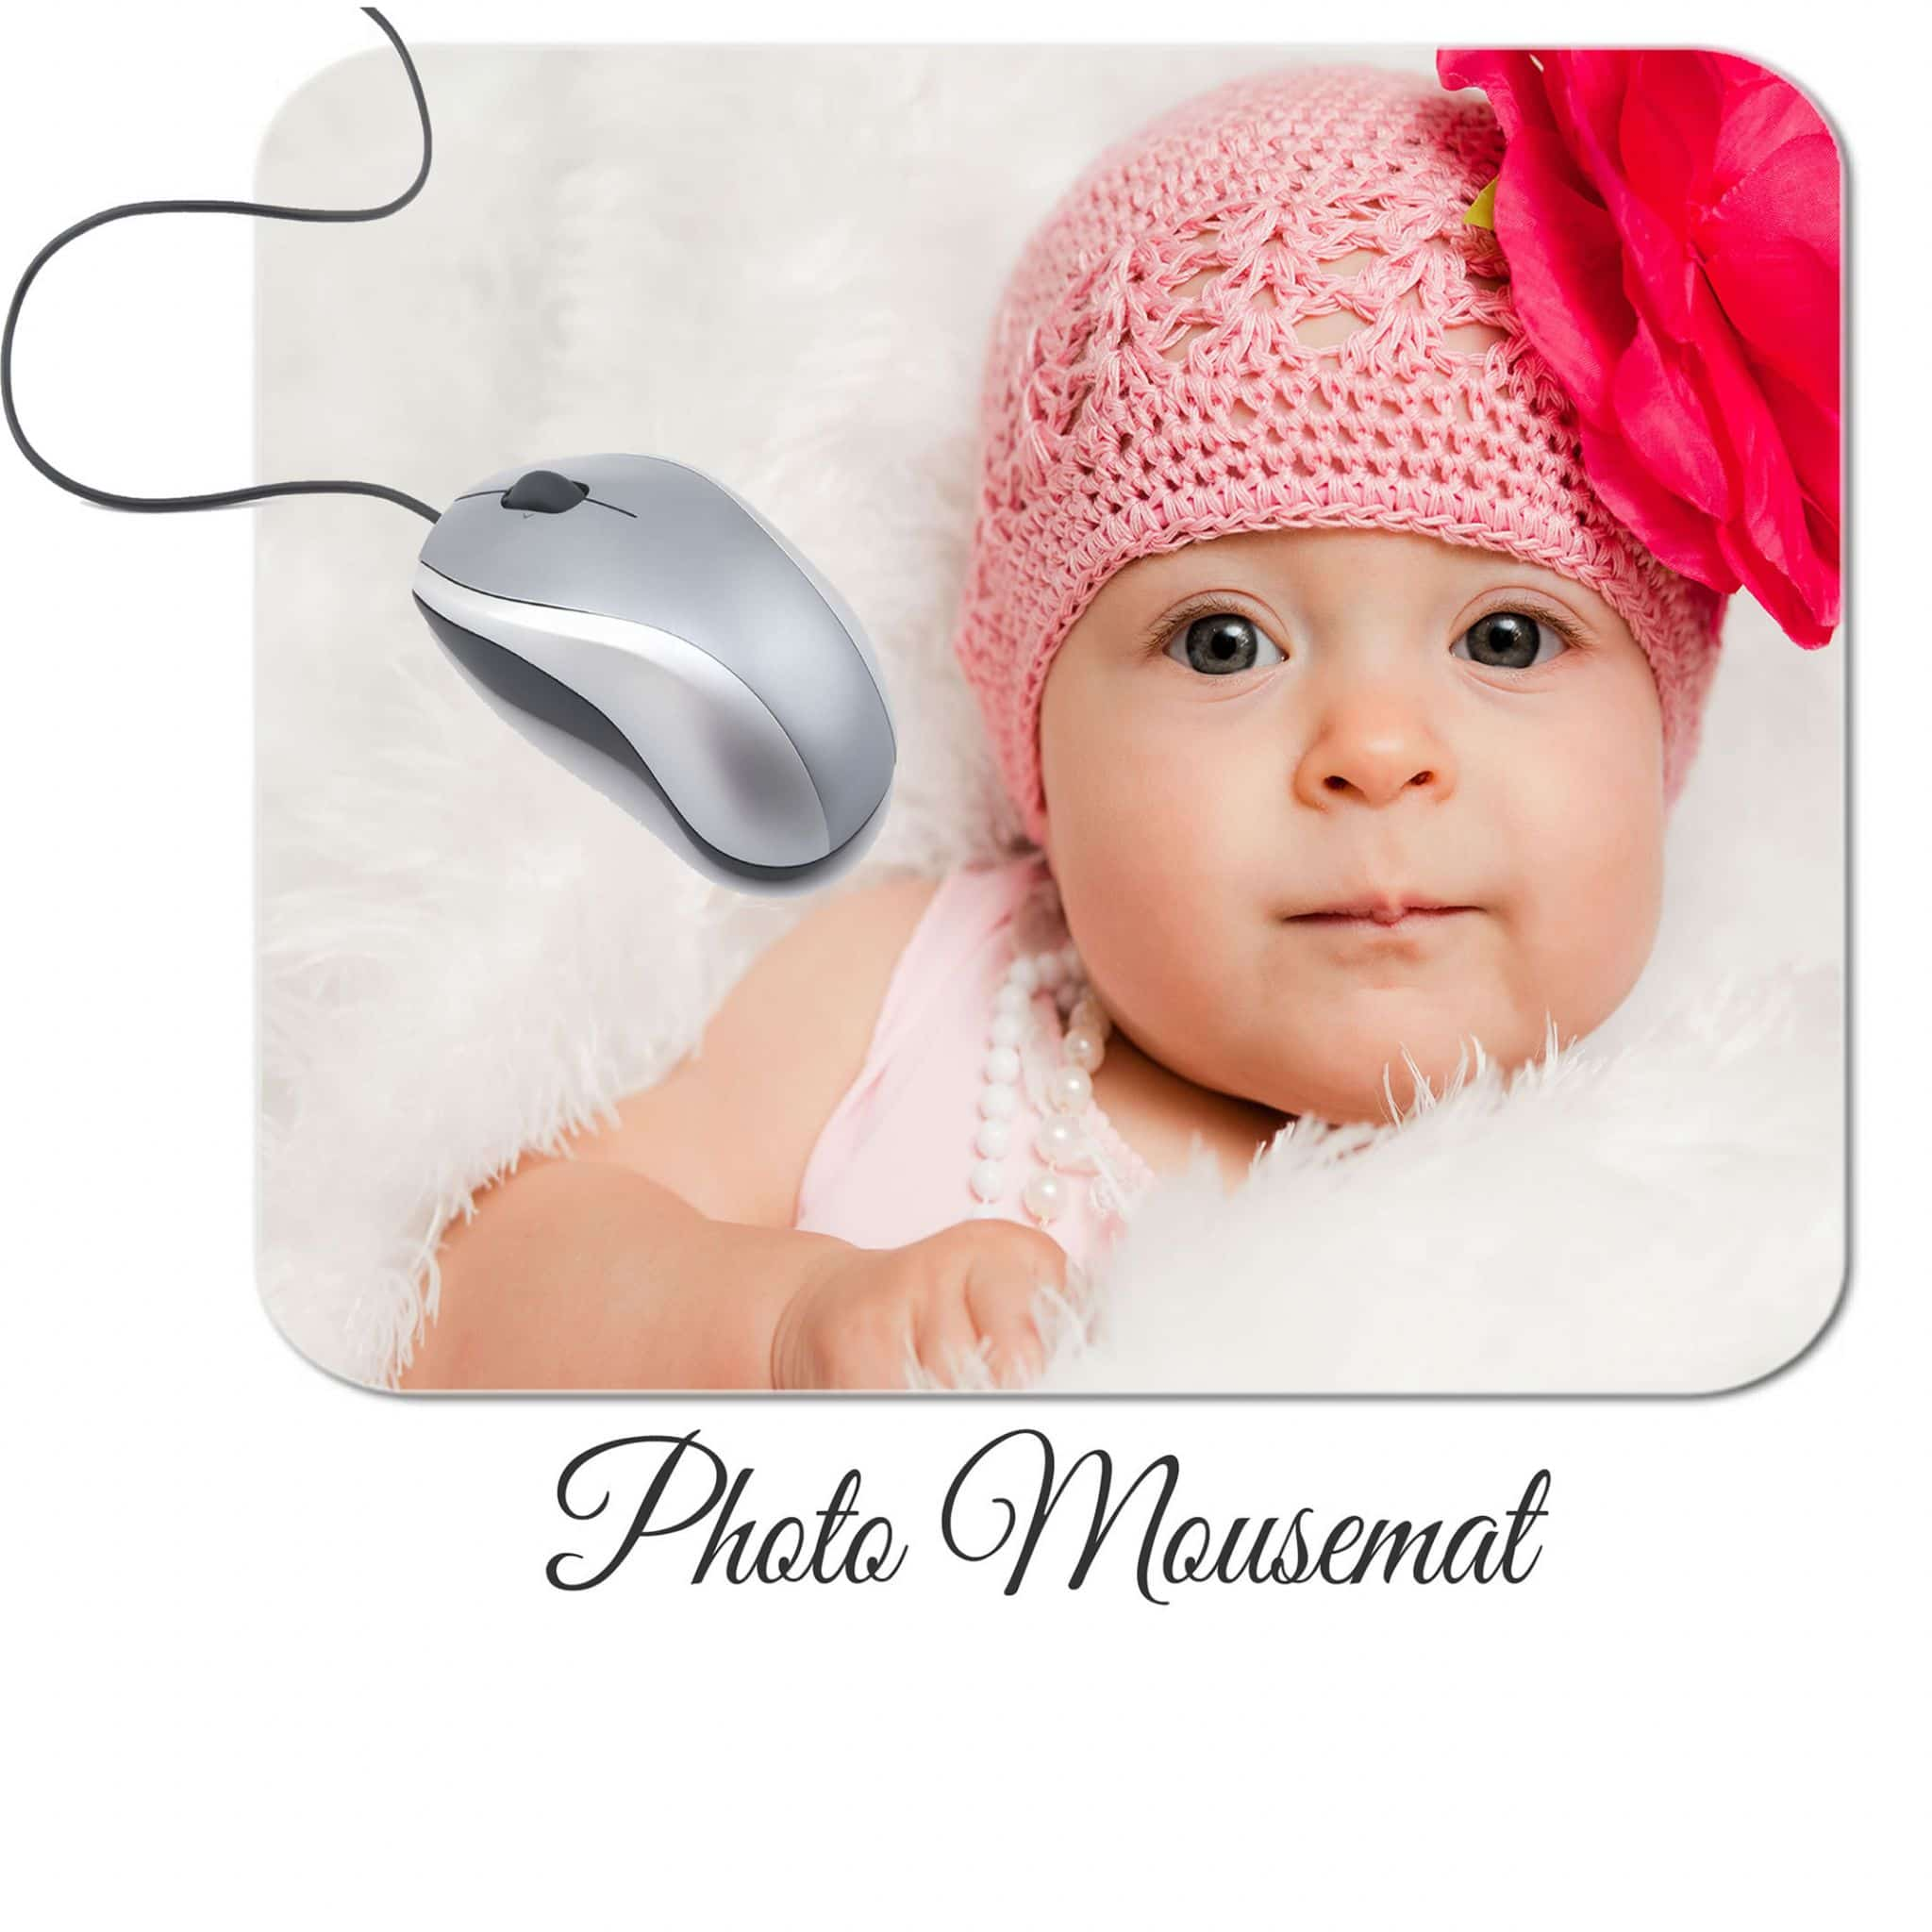 Little Gifts With Love - Personalised Mouse Mat Add Any Photo or Image